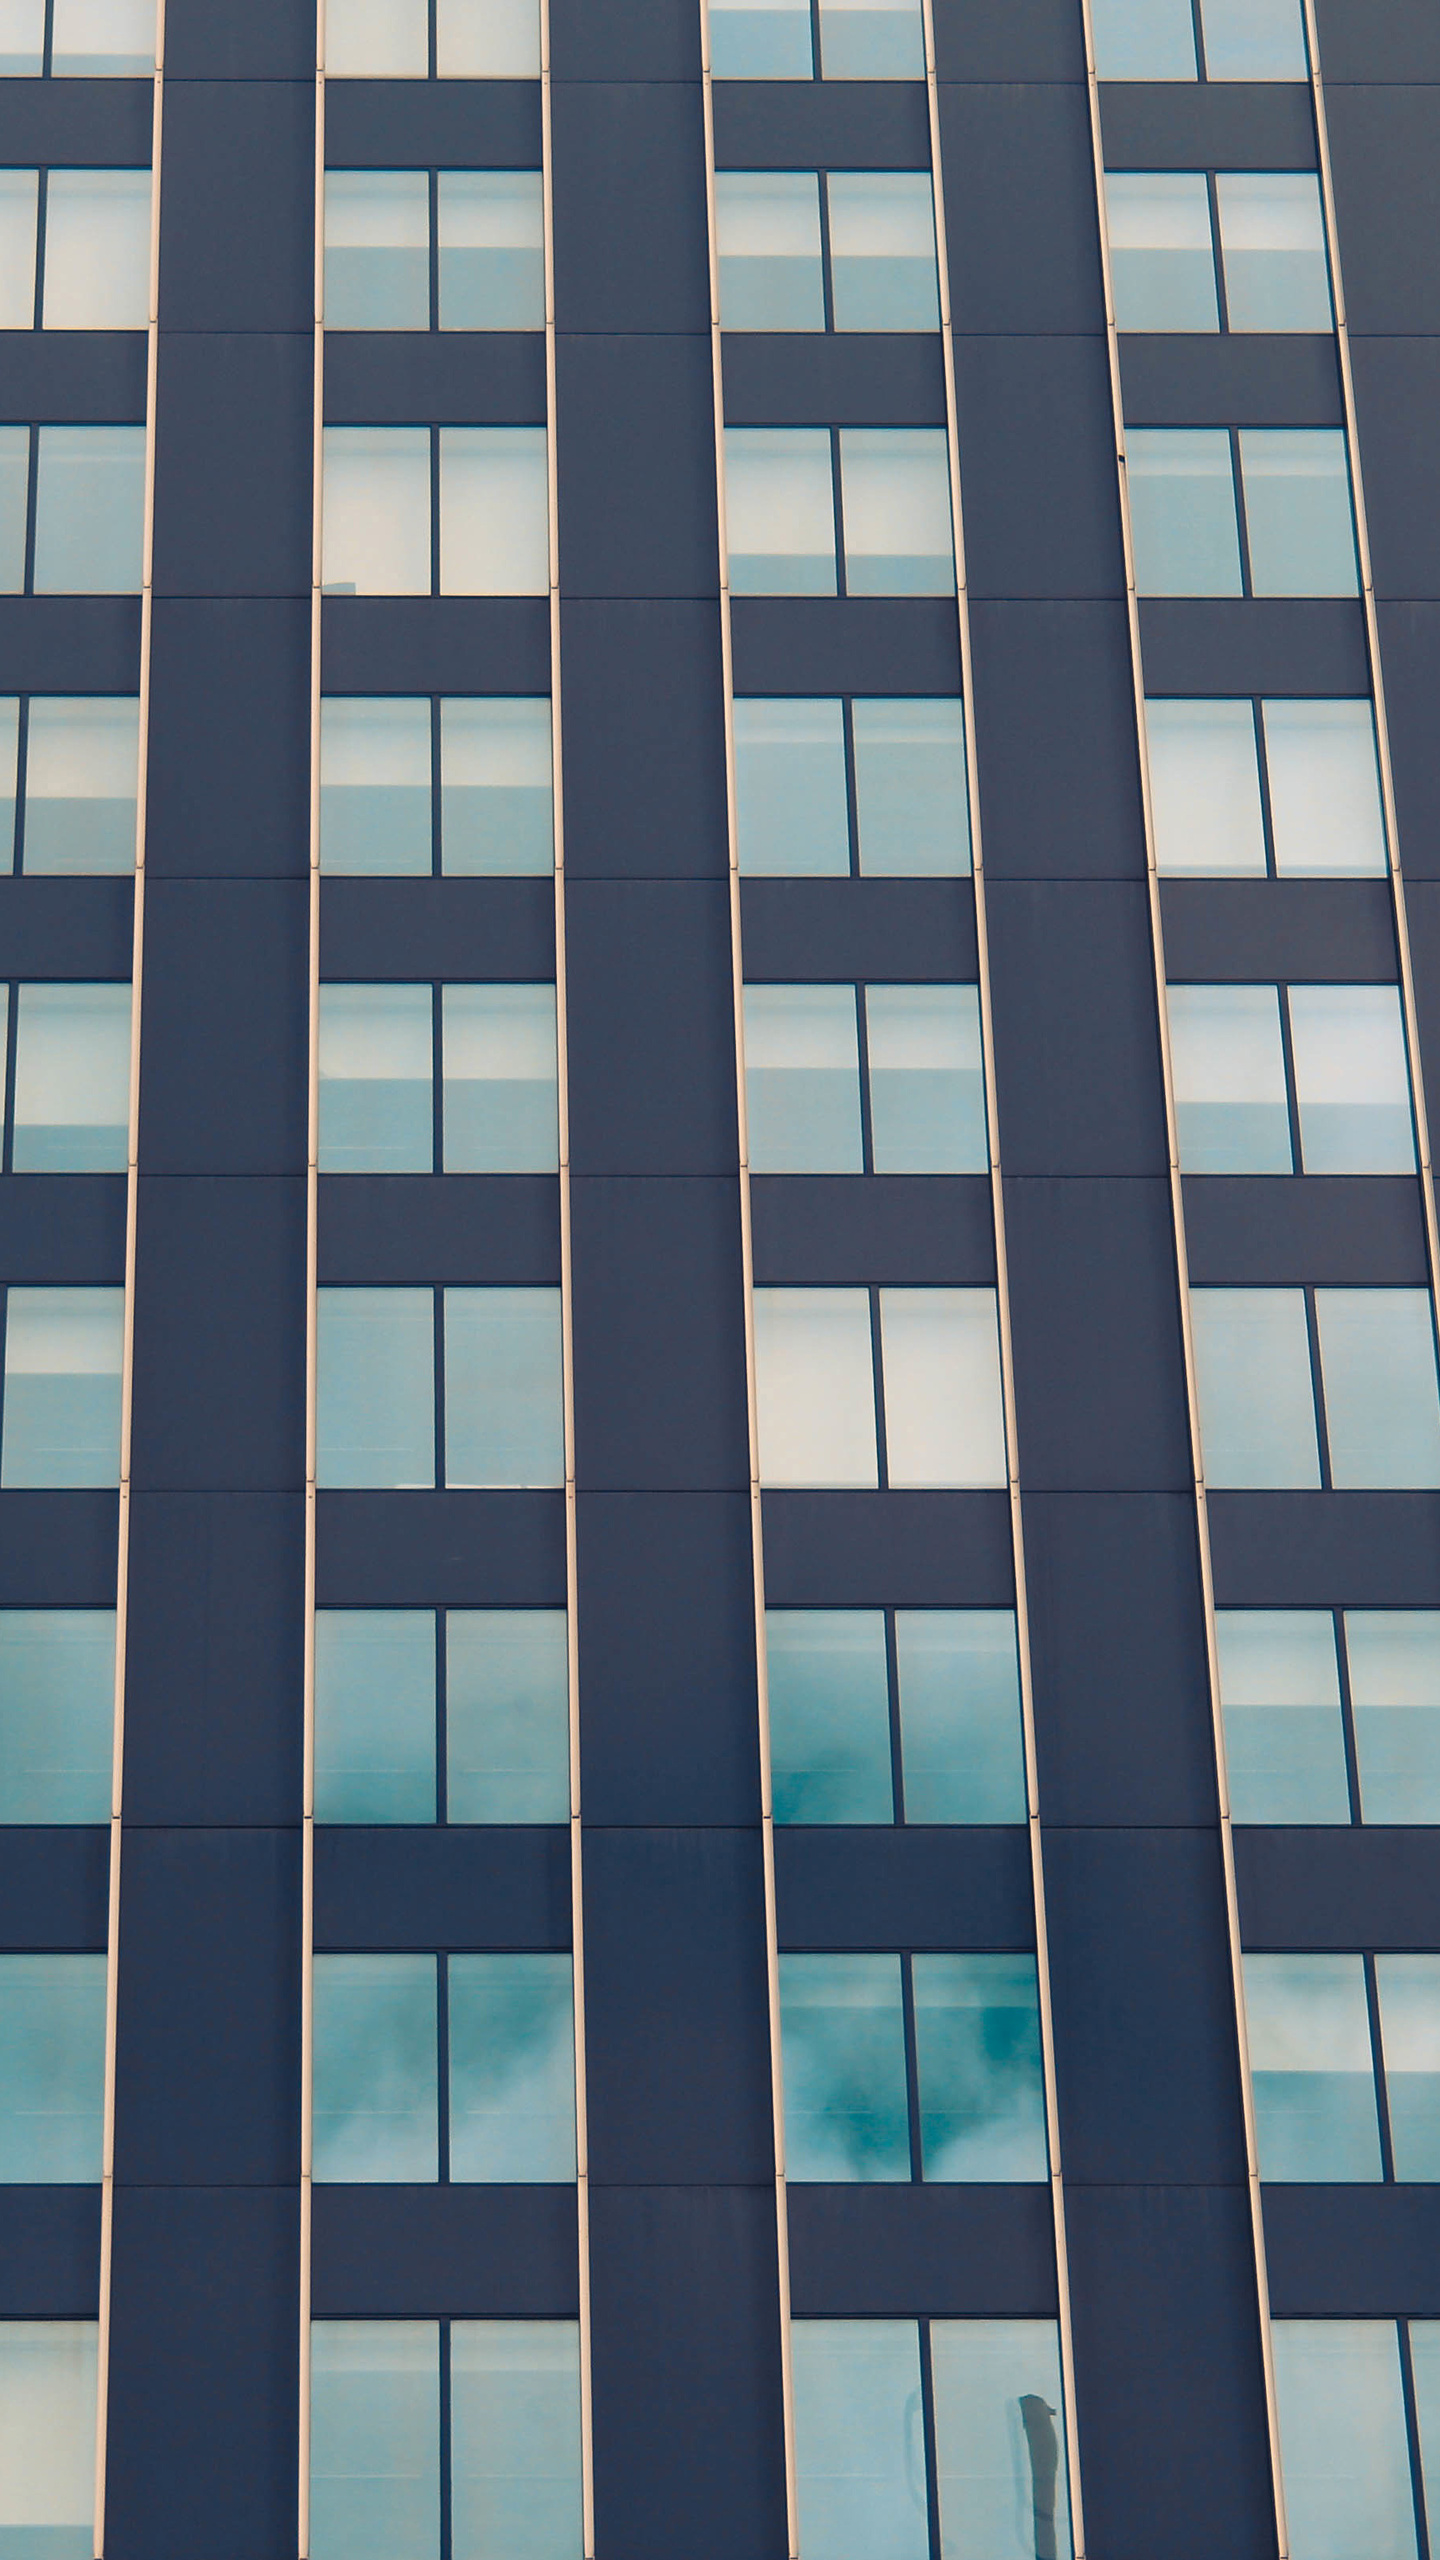 building-windows-grid-abstract-yh.jpg